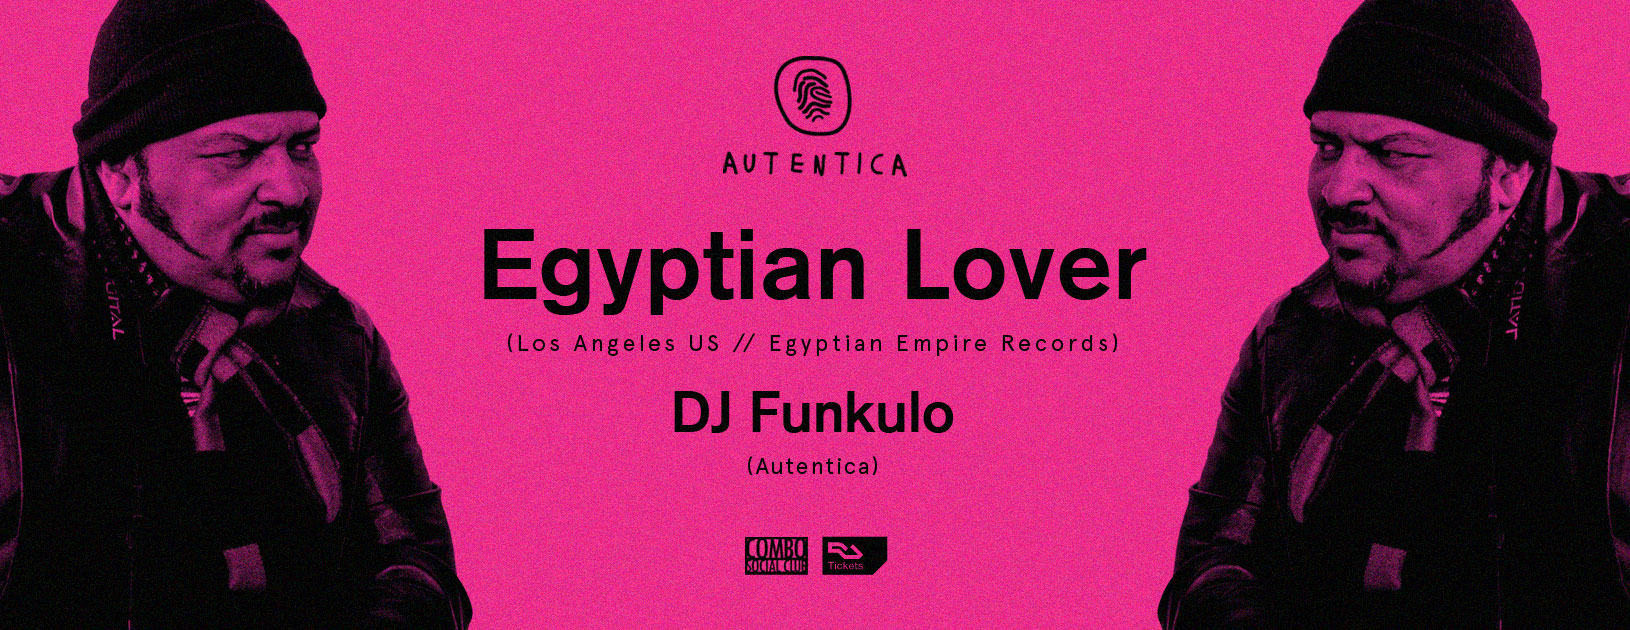 Autentica pres. Egyptian Lover